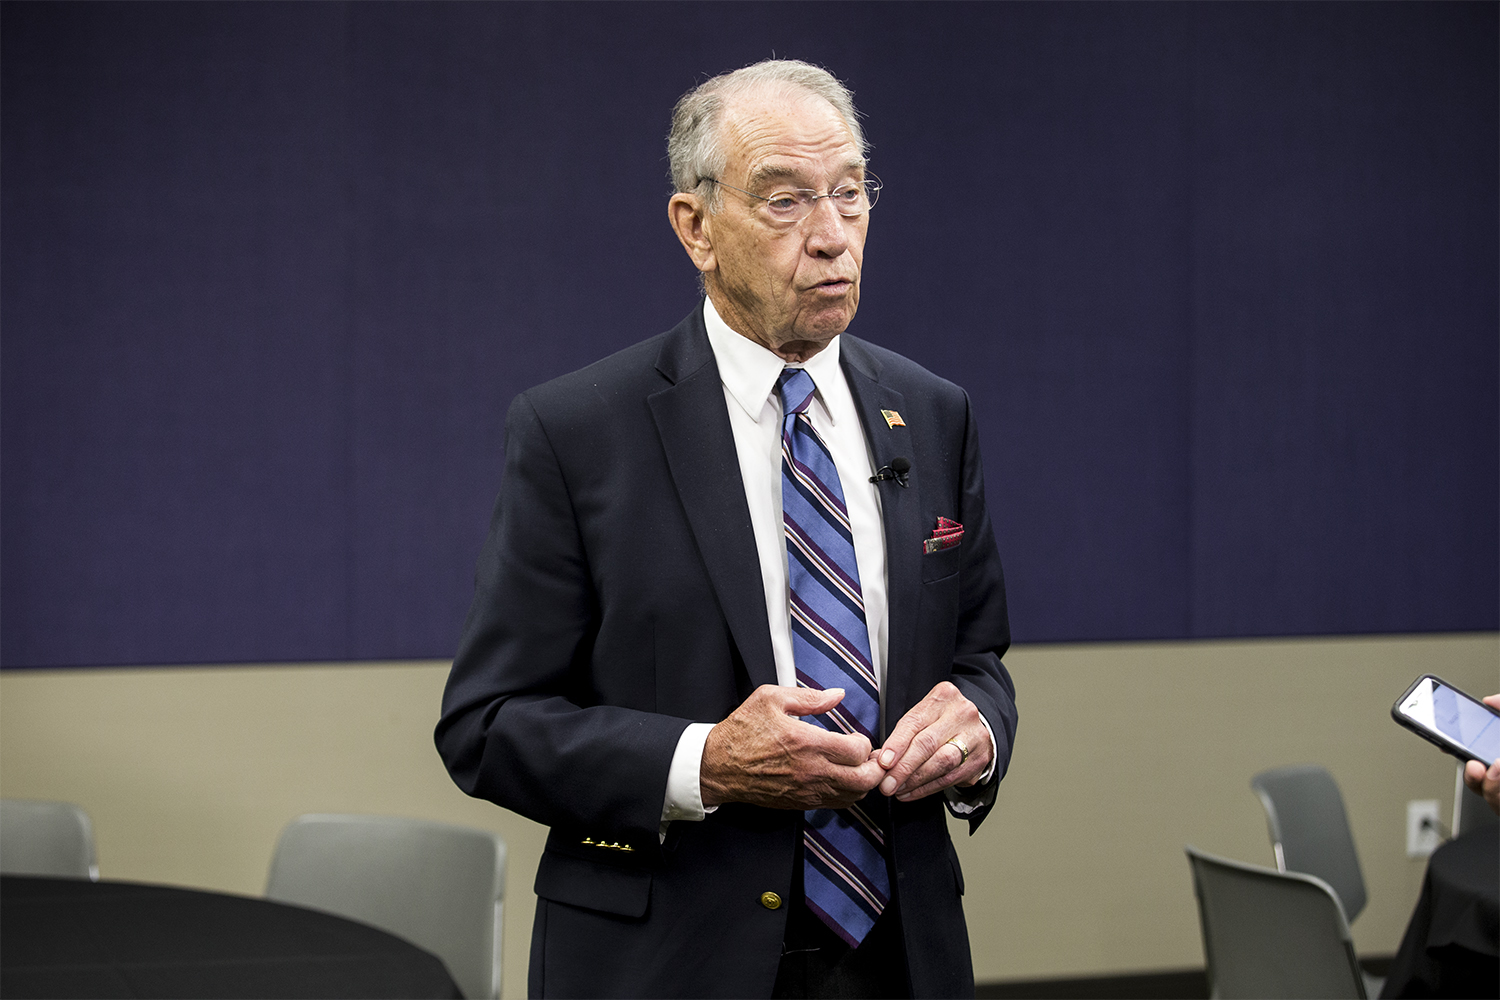 Then-Senate Judiciary Committee Chair Chuck Grassley, R-Iowa, talks to reporters at the Eight Circuit Judicial Conference in Des Moines on Friday, Aug. 17, 2018.